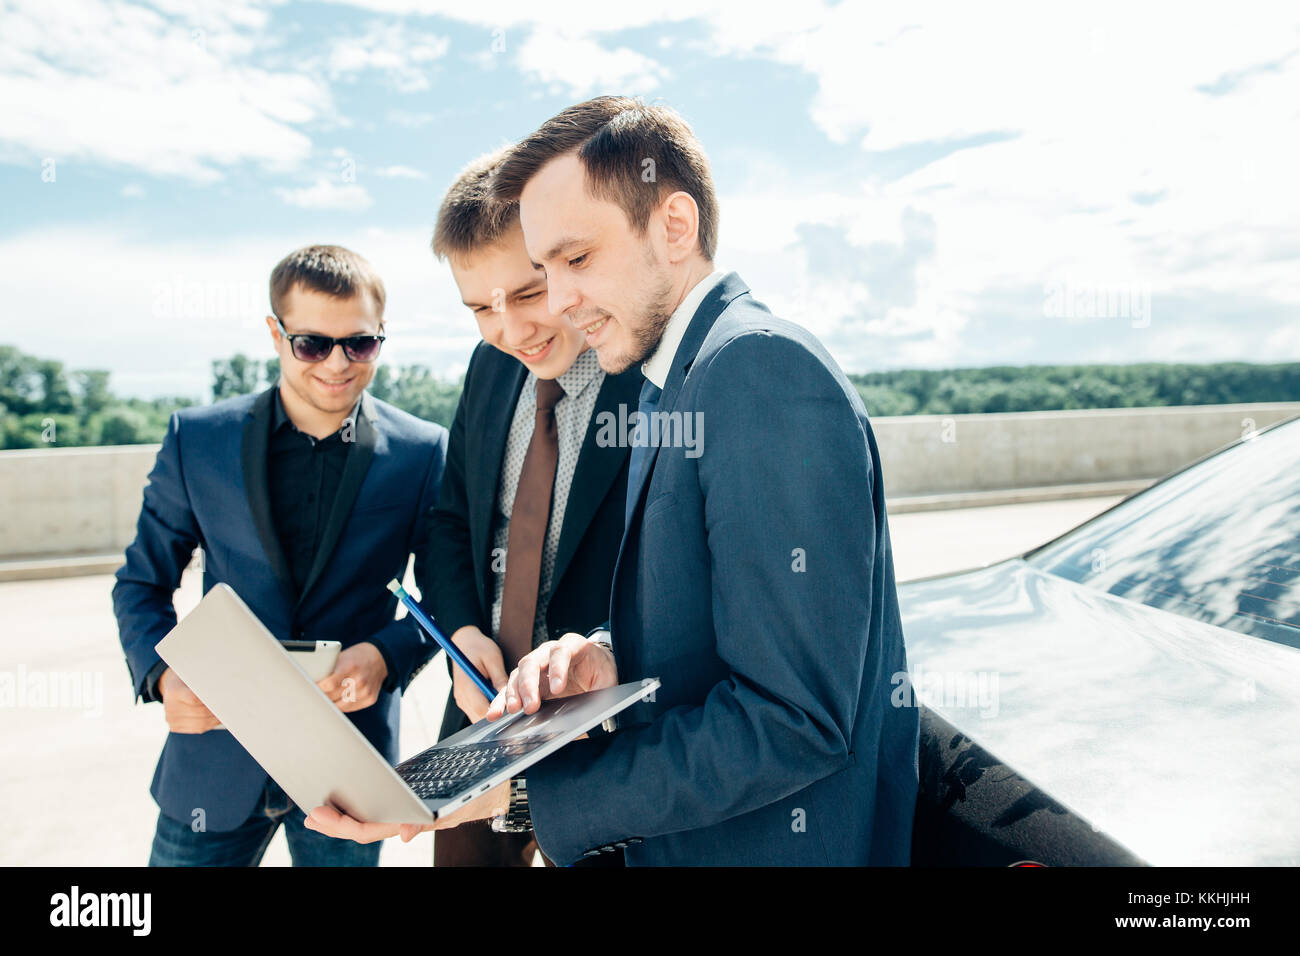 2a9792a905 three Businessman Using Digital Tablet Outside against car - Stock Image